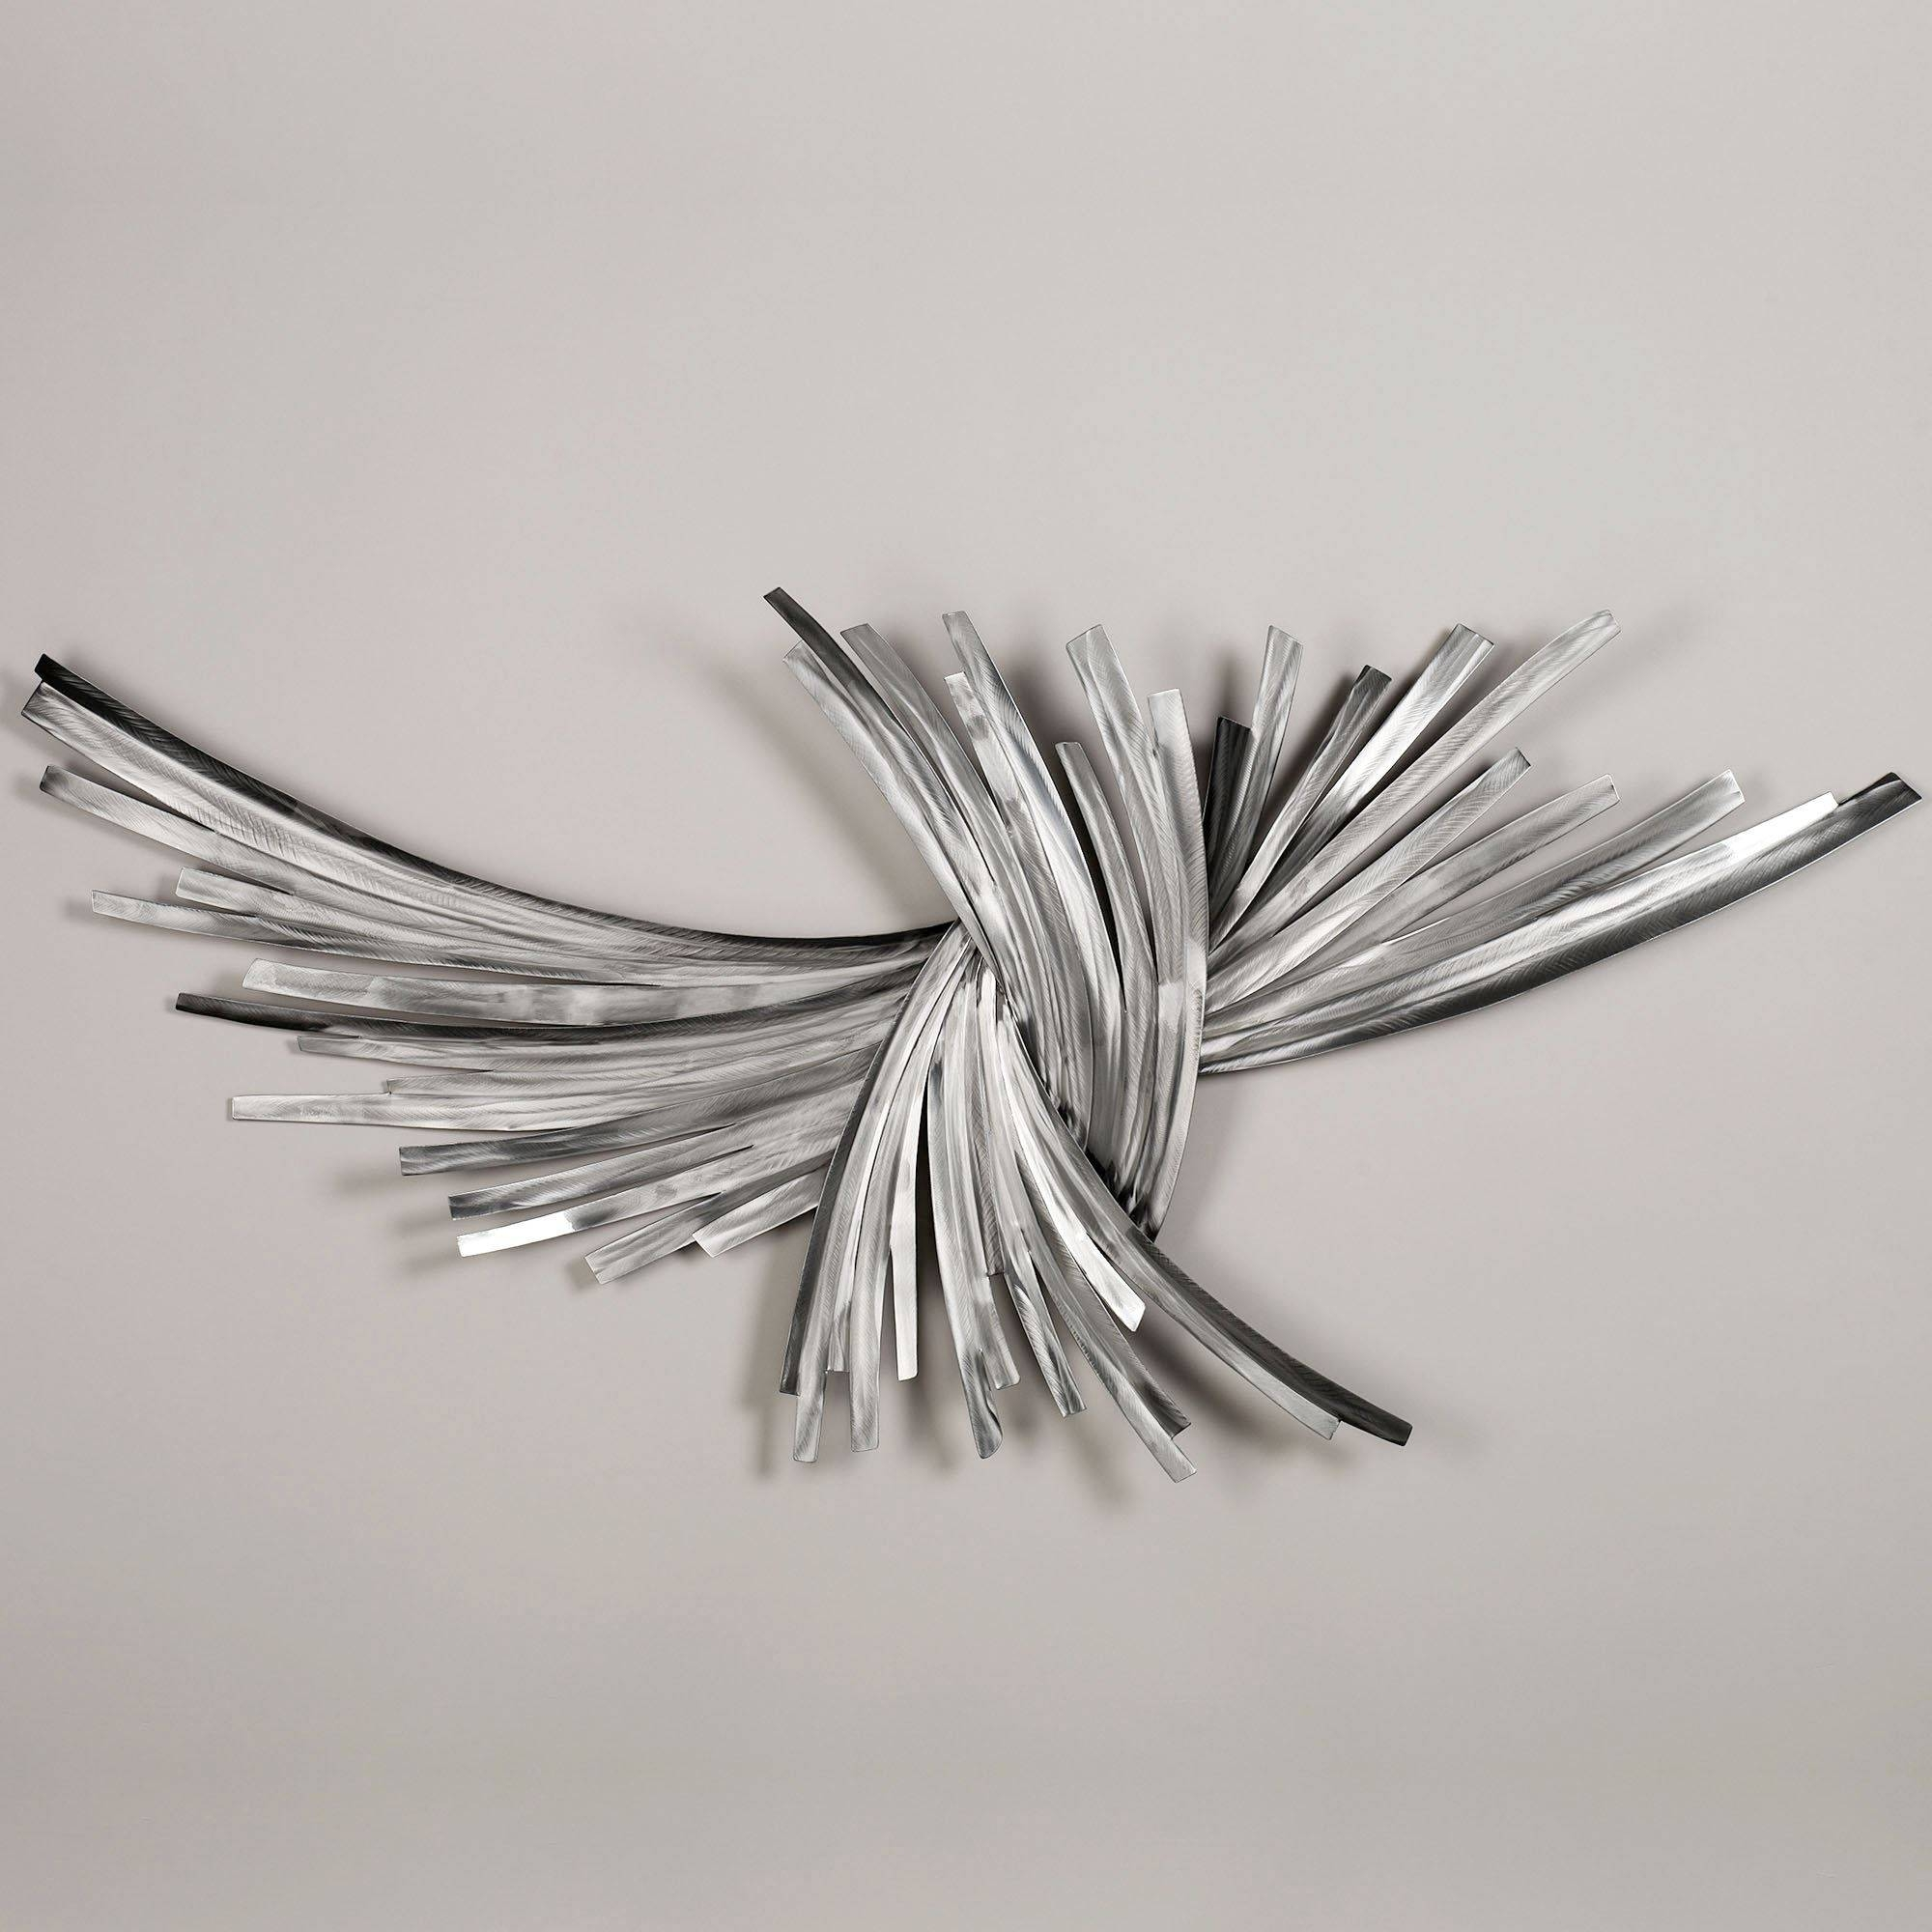 Infinity Silver Metal Wall Sculpture Pertaining To Most Current Silver Metal Wall Art (Gallery 3 of 20)